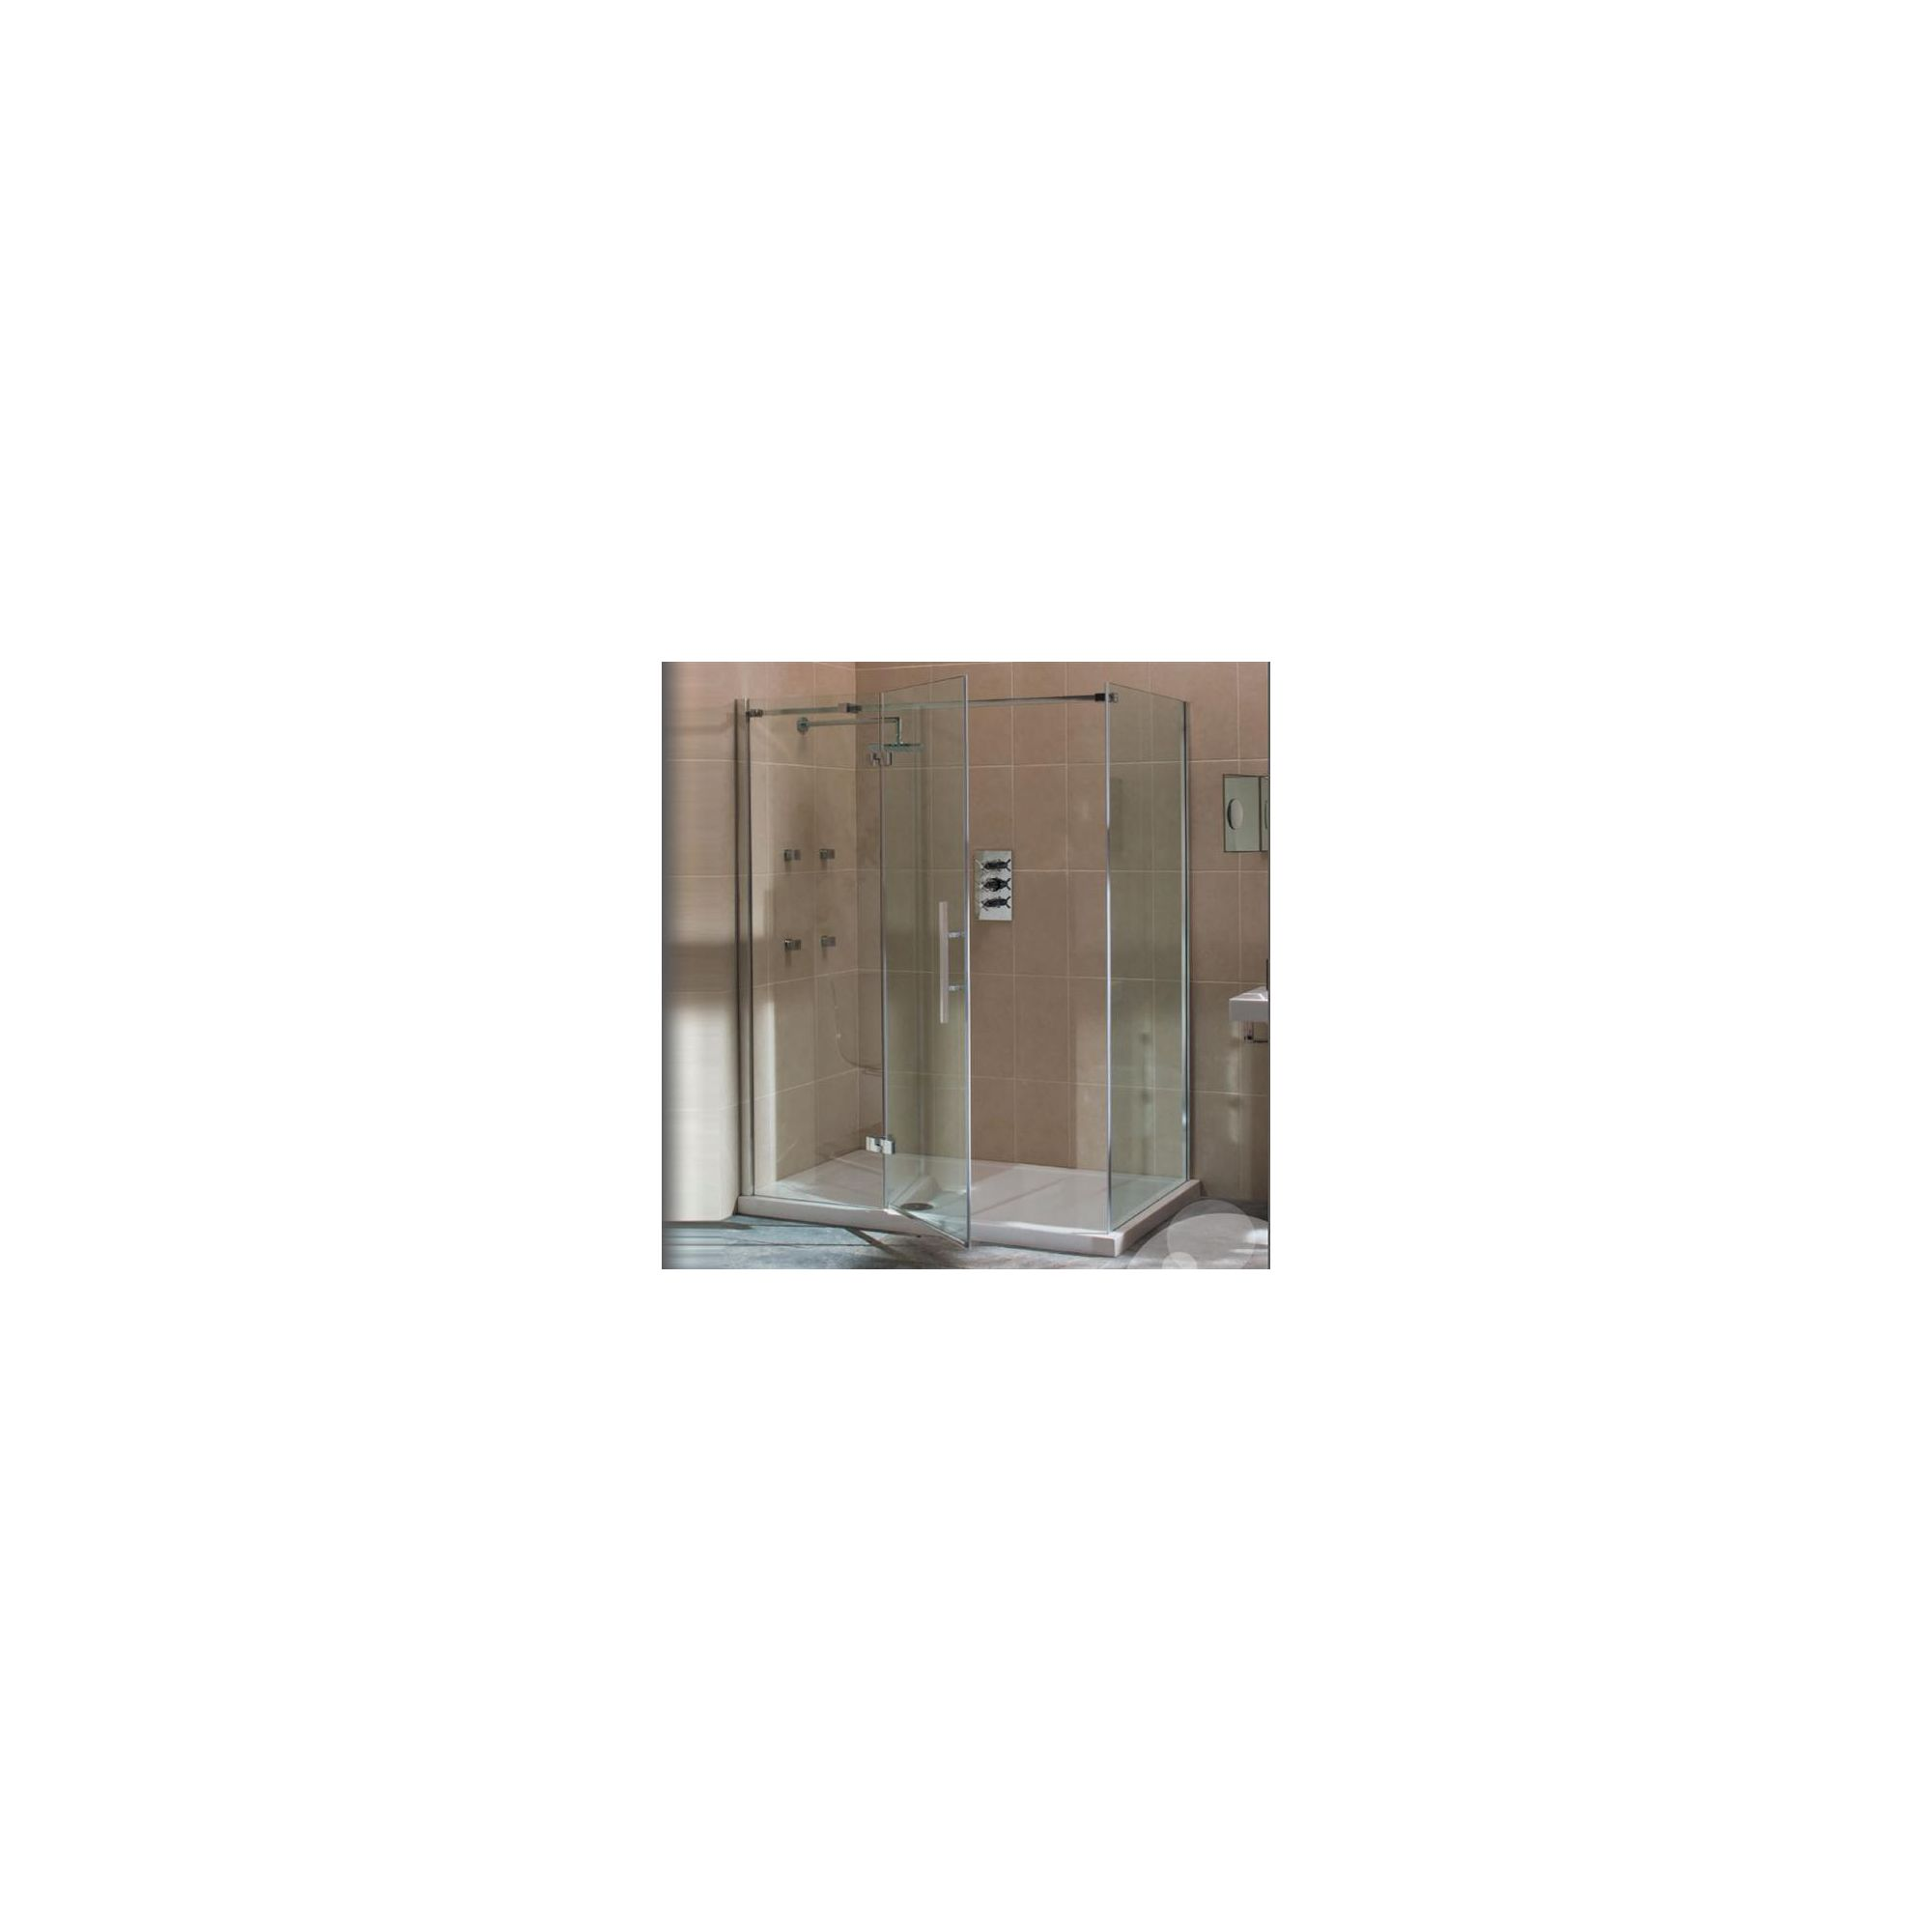 Merlyn Vivid Nine Hinged Door Shower Enclosure with Inline Panel, 1600mm x 800mm, Left Handed, Low Profile Tray, 8mm Glass at Tesco Direct